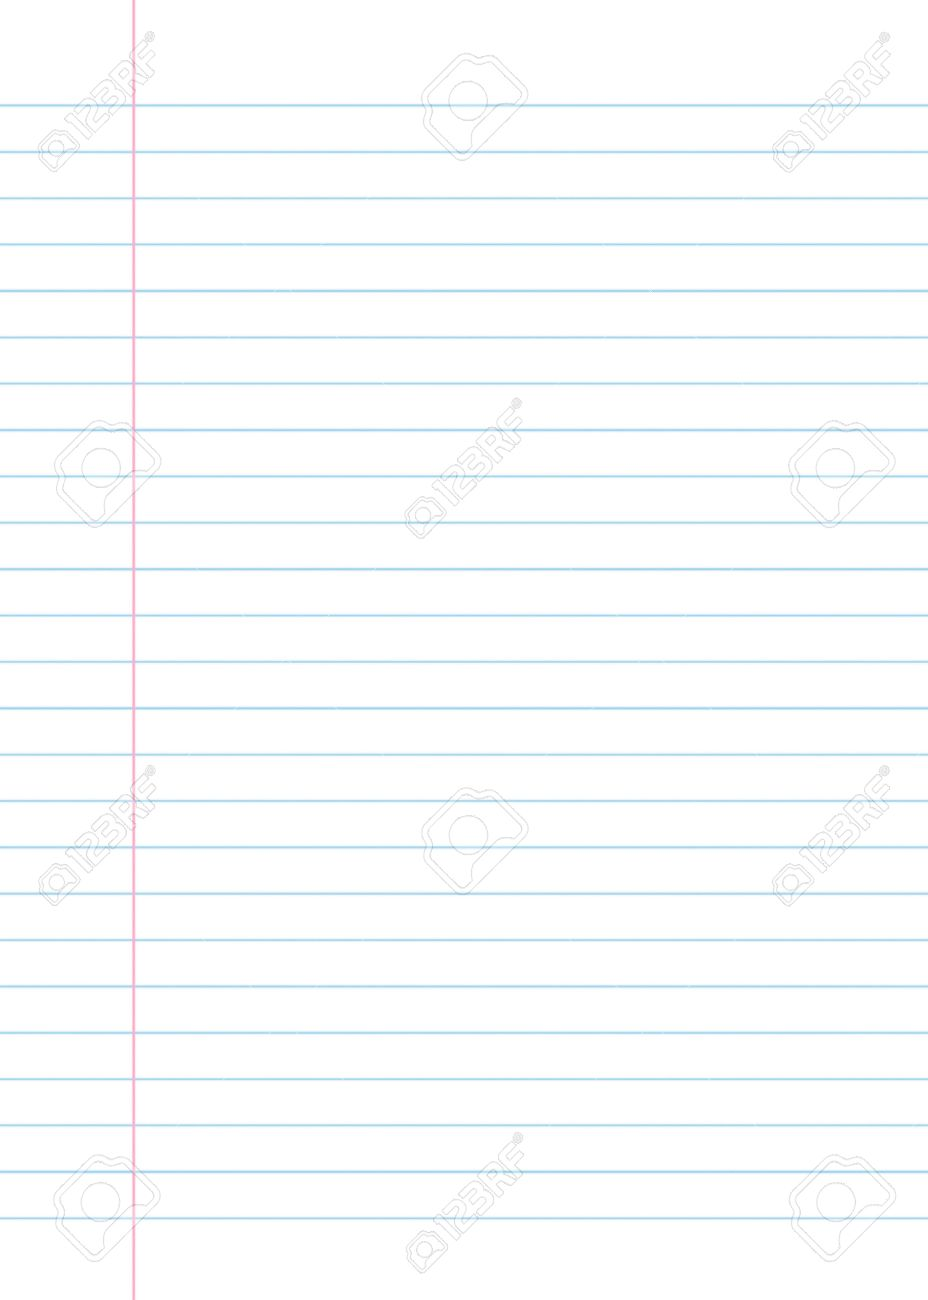 Blank Lined Paper Texture From A Notebook Or Notepad Great For – Design Paper for Writing